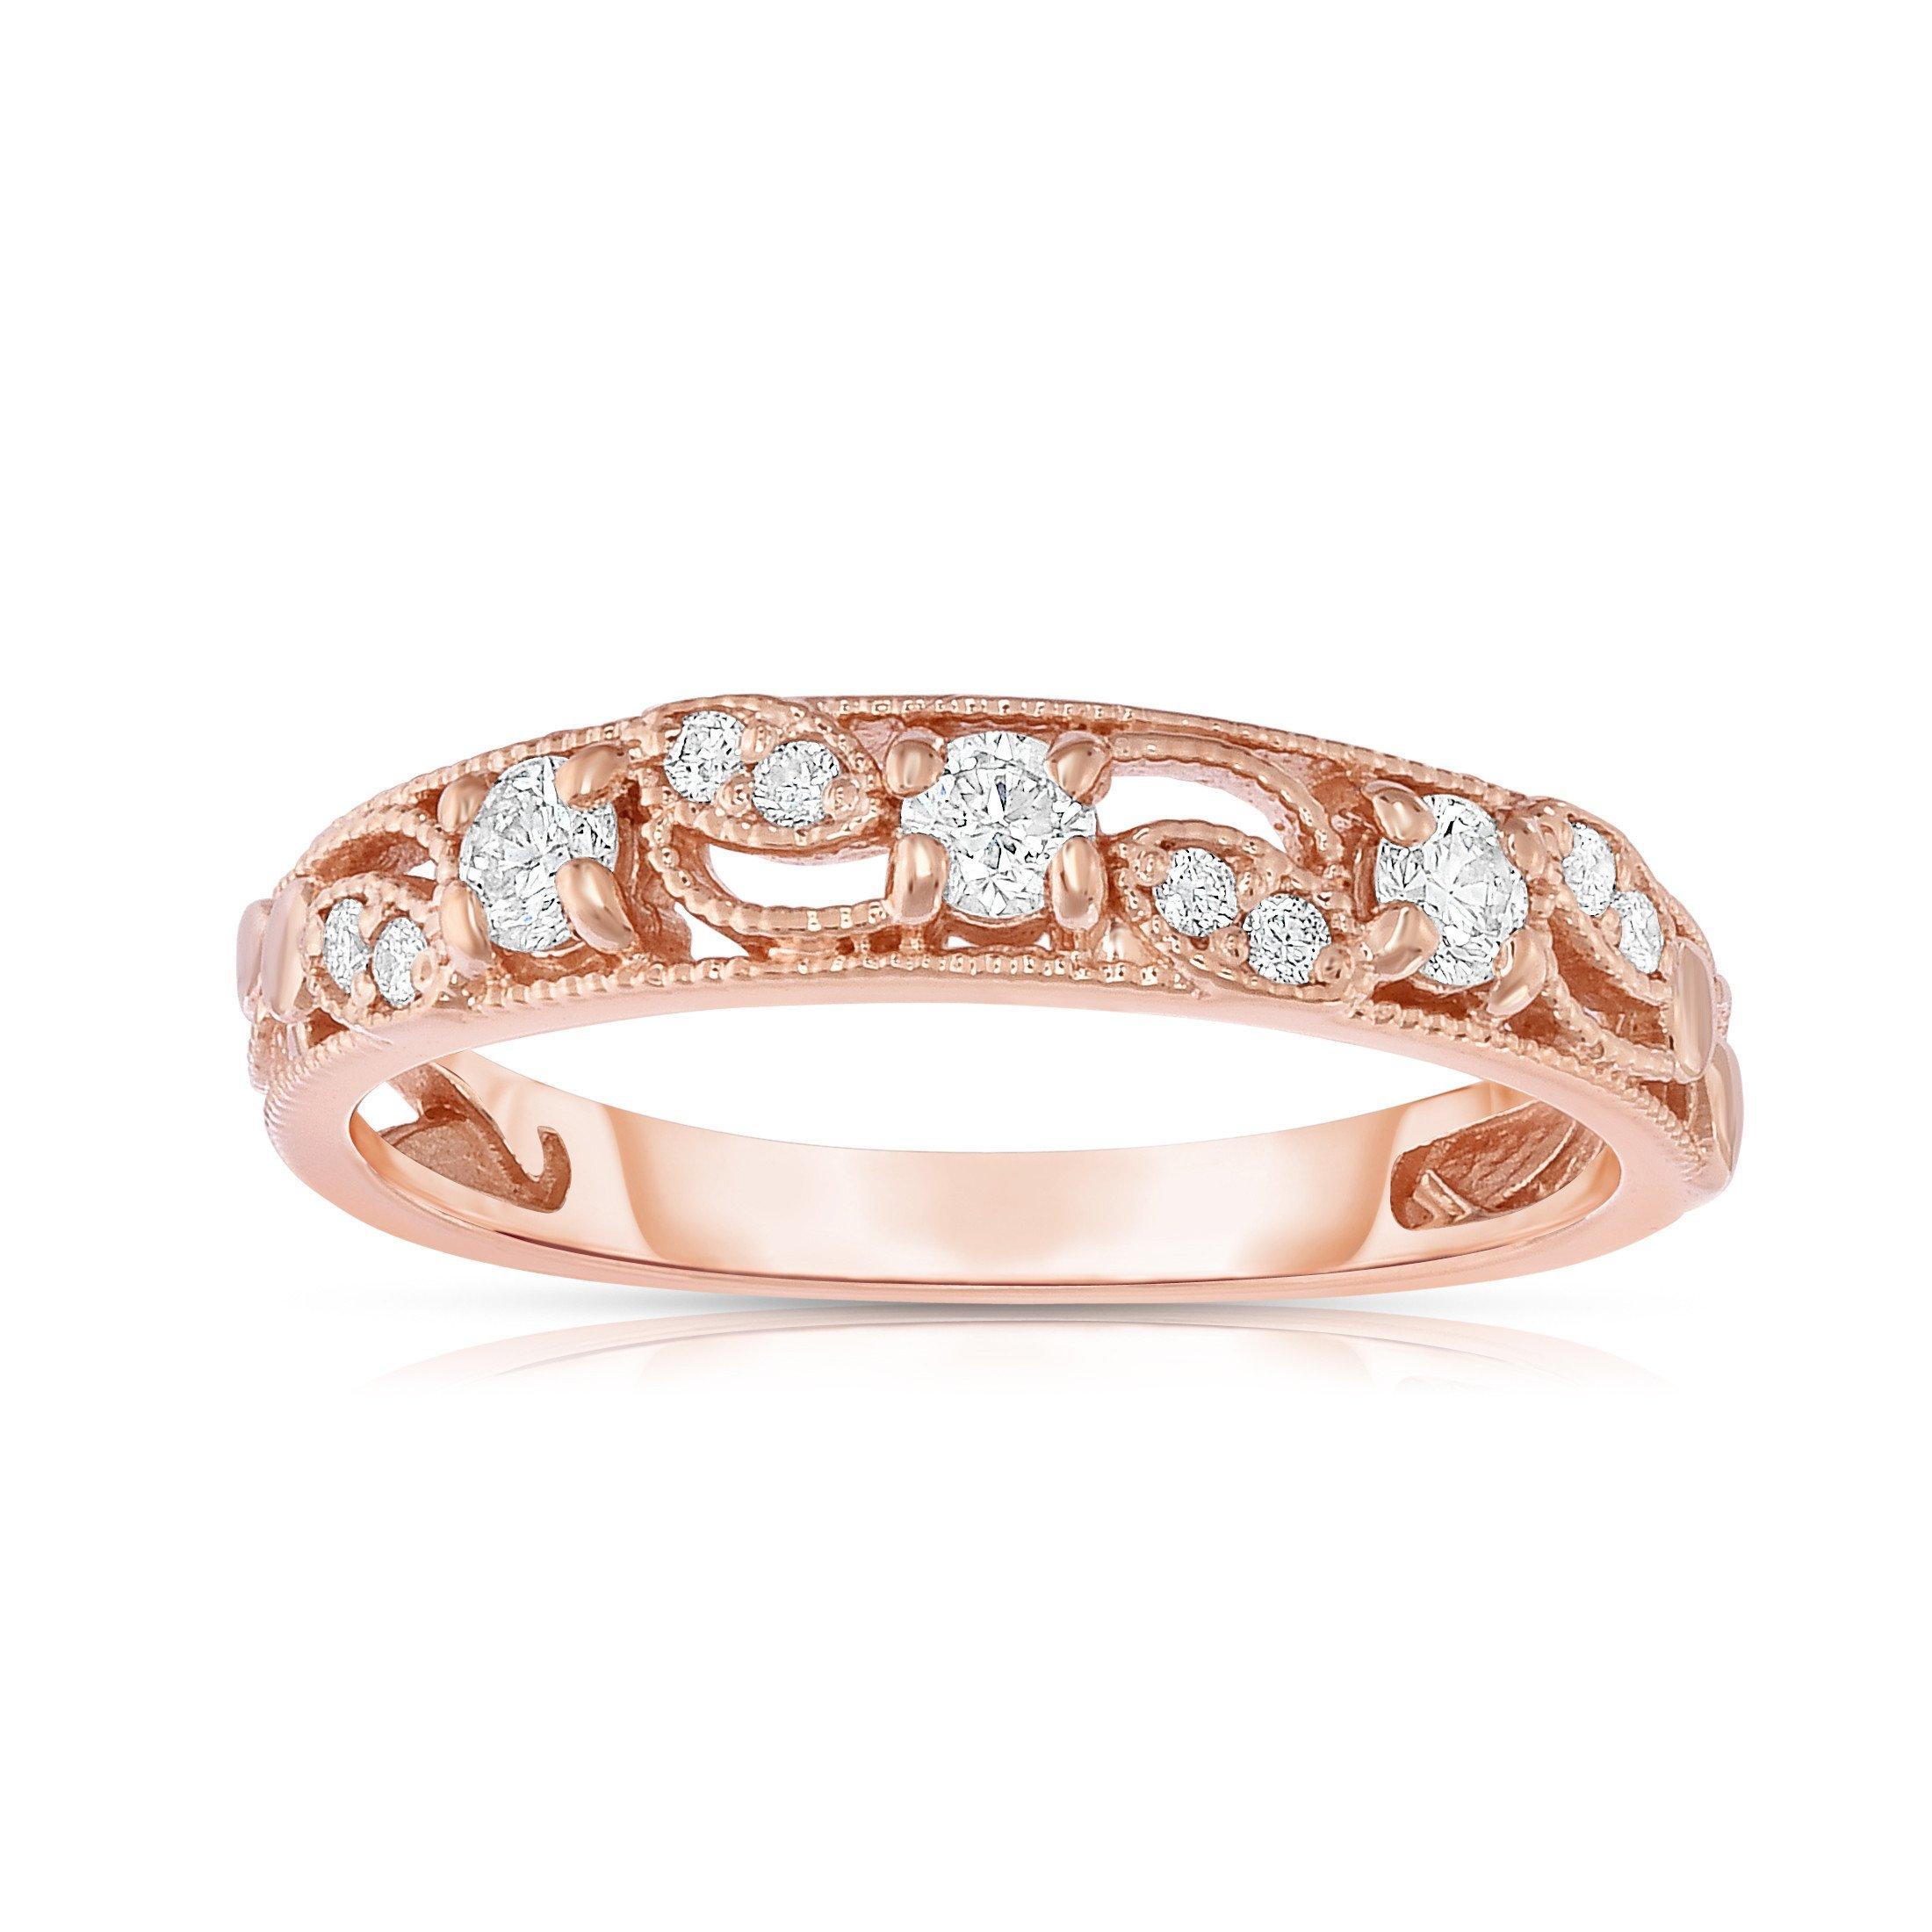 Noray Designs 14K Rose Gold (1/4 Ct, G-H, SI2-I1 Clarity) Stackable Ring